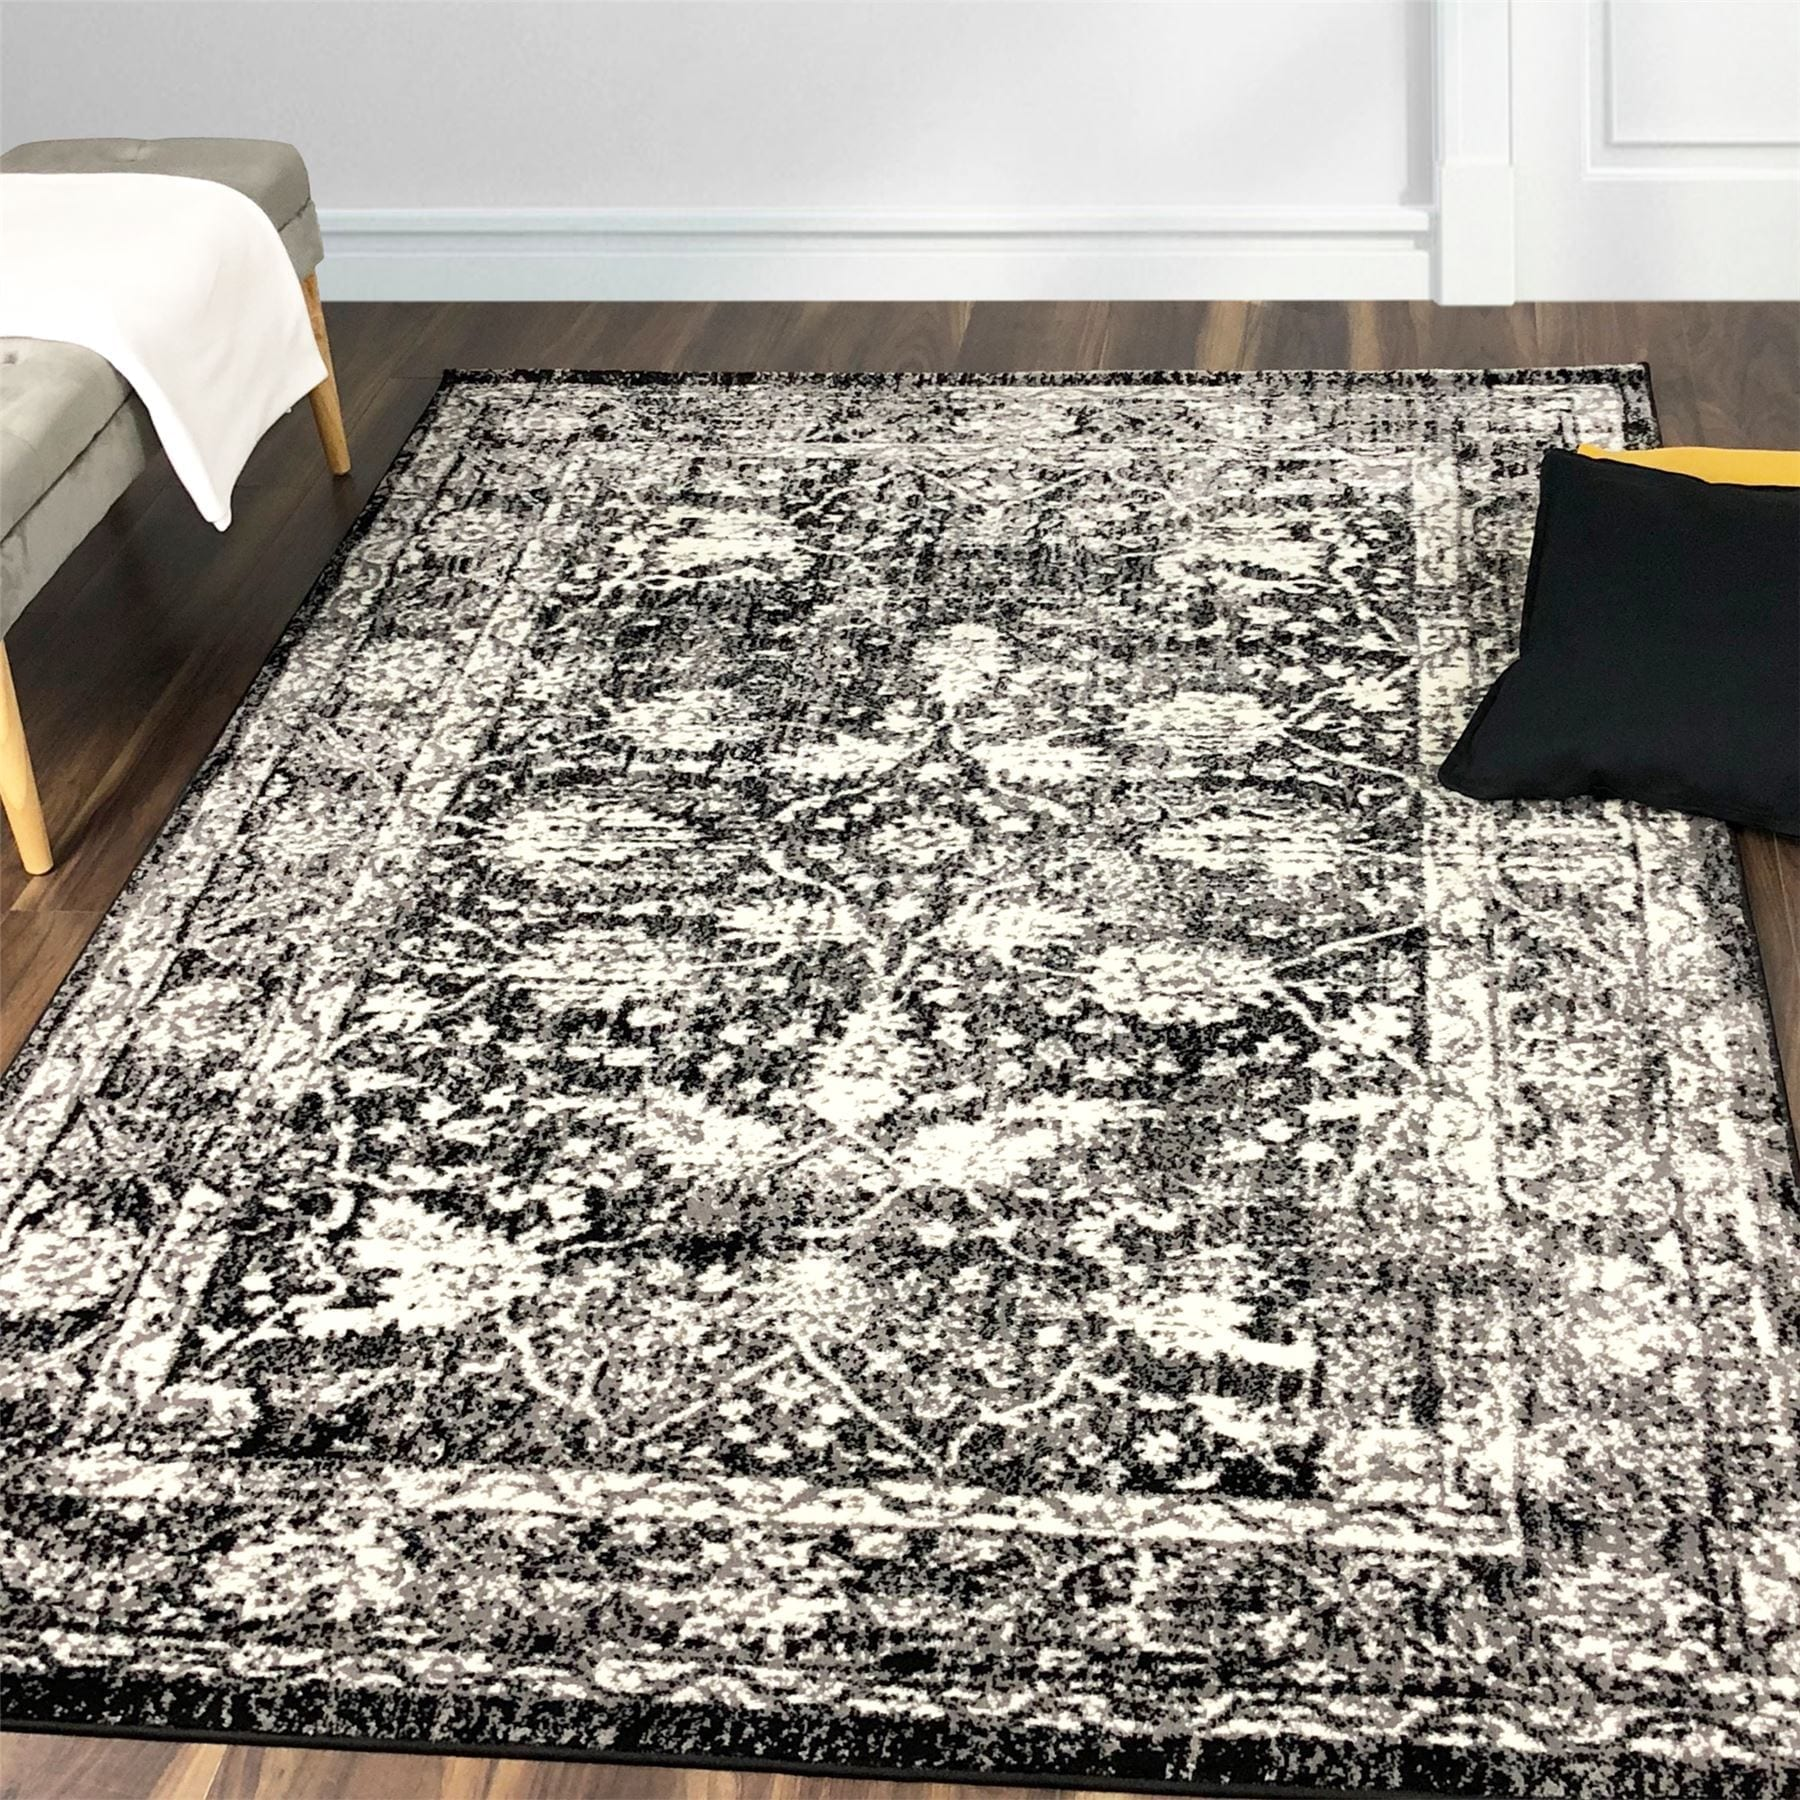 Large Area Rugs For 10x14 Extra